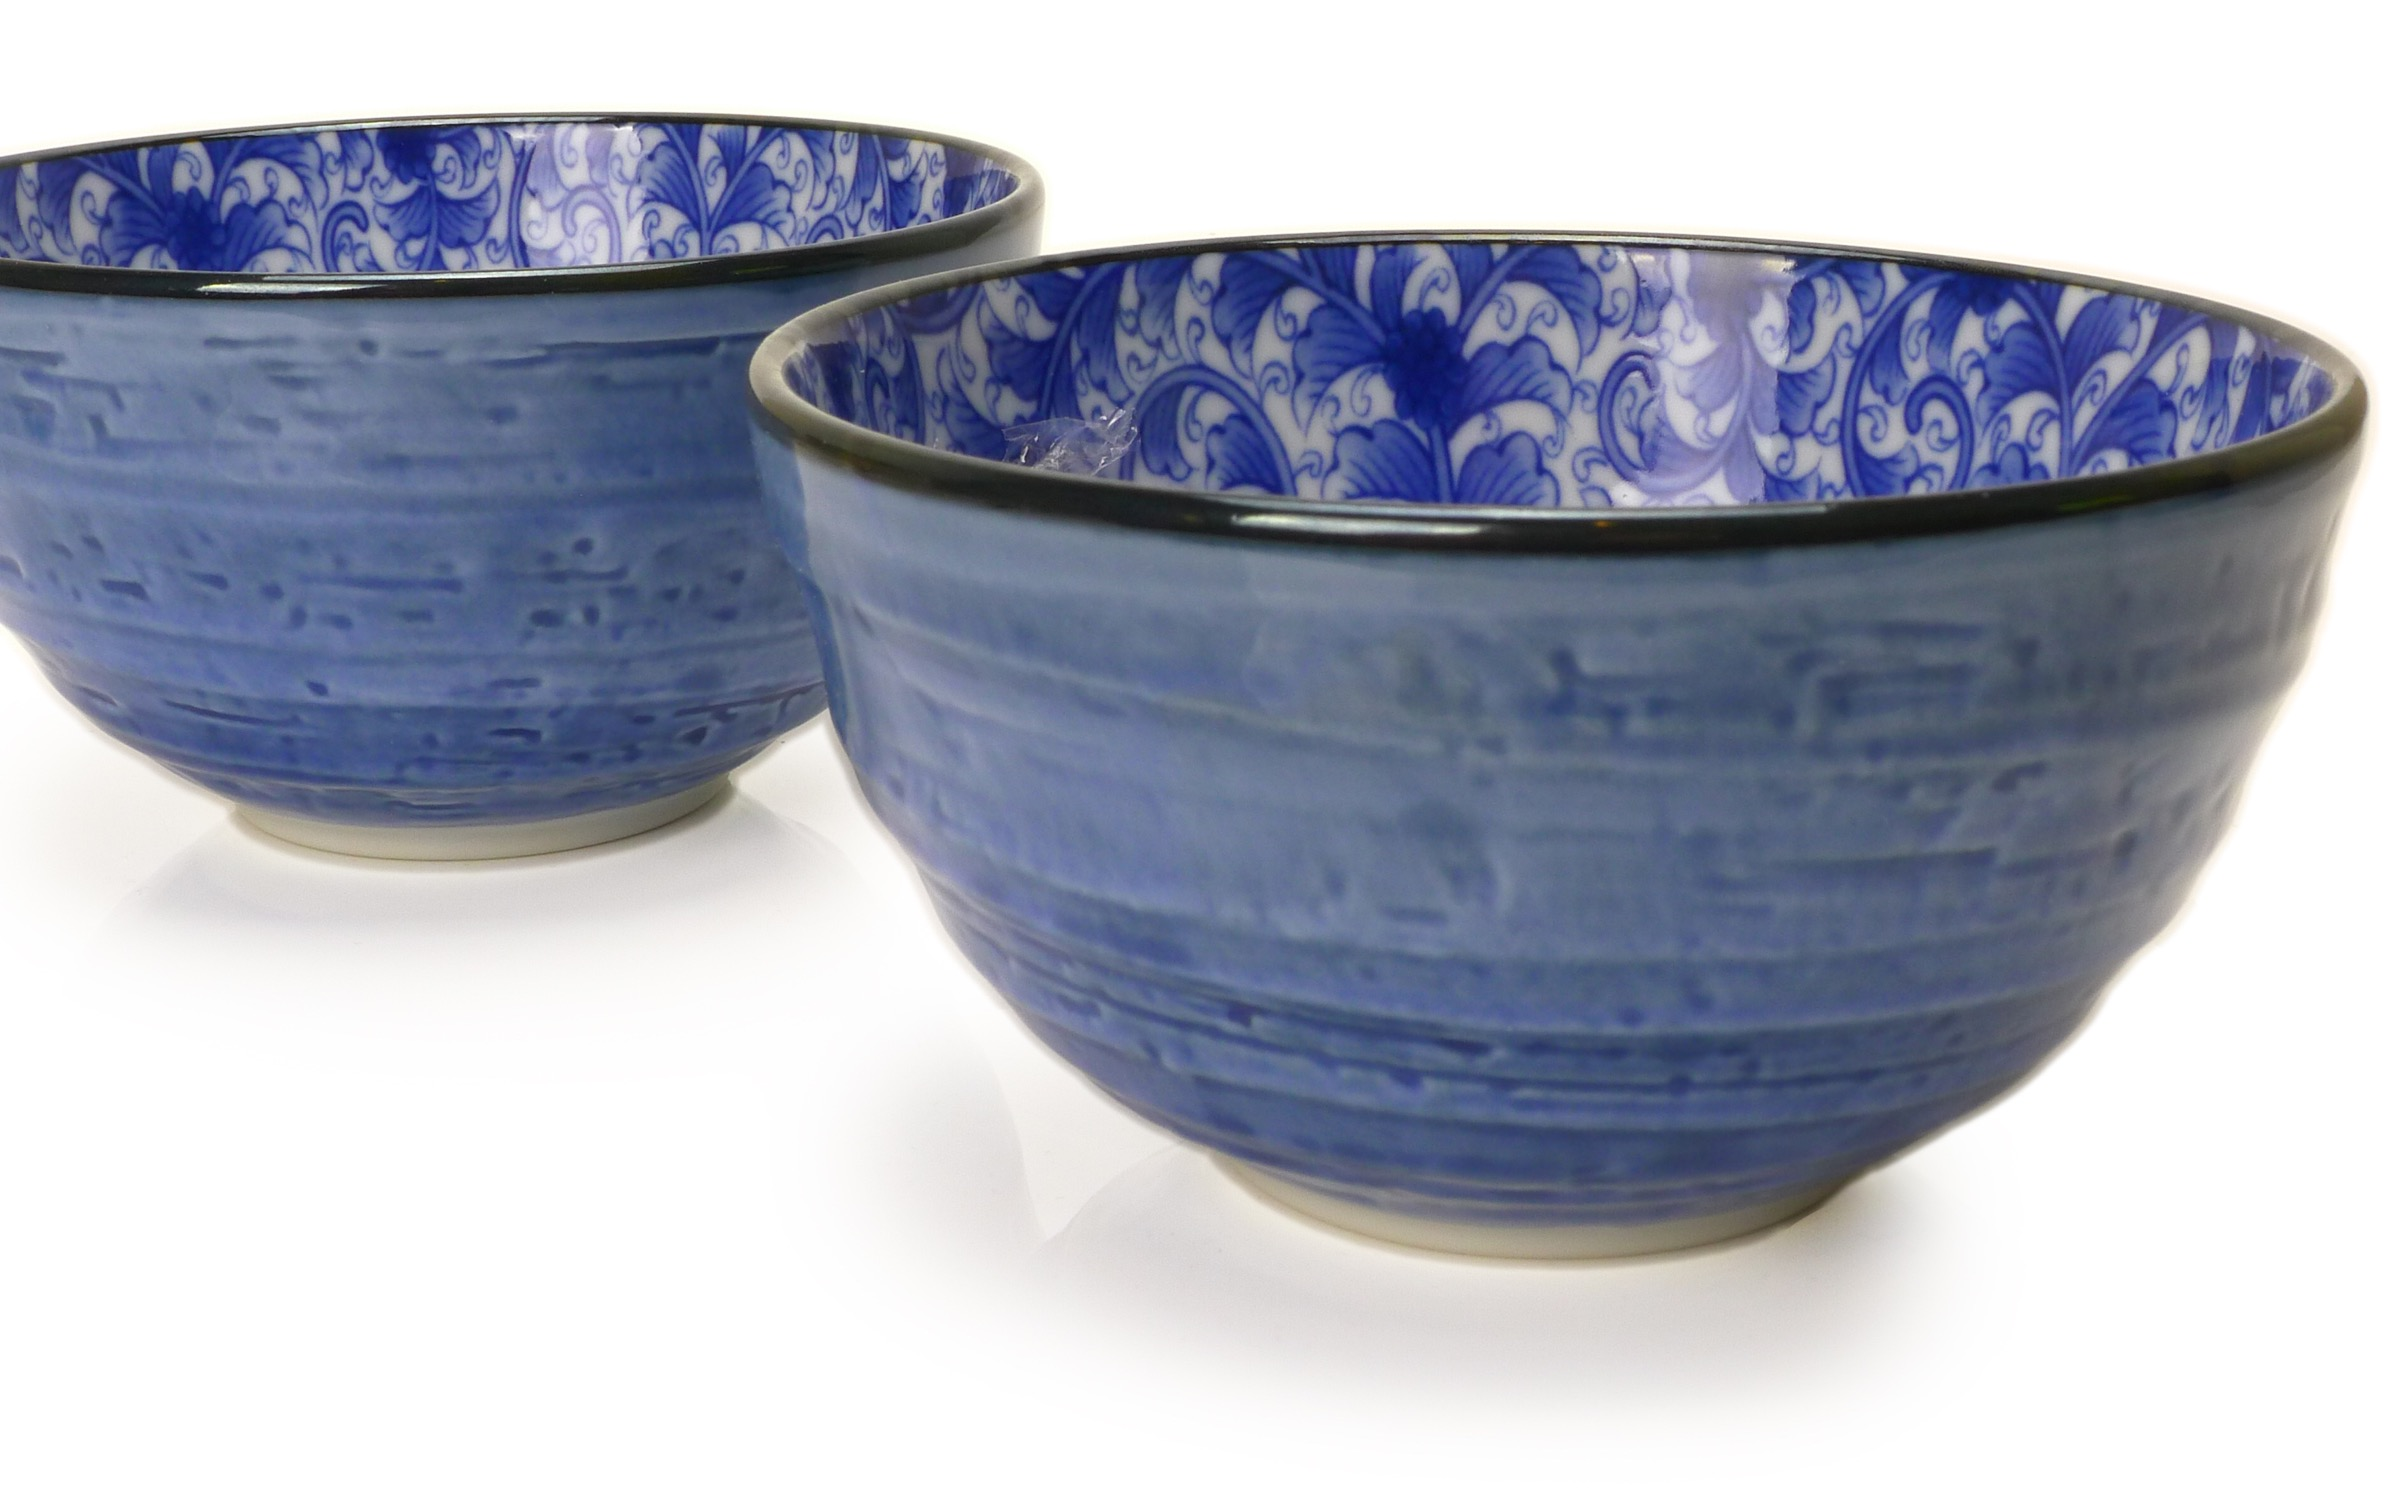 Image of Porcelain Bowls 5.5-Inch Blue with Blue Nochigo Design, Set Of Two